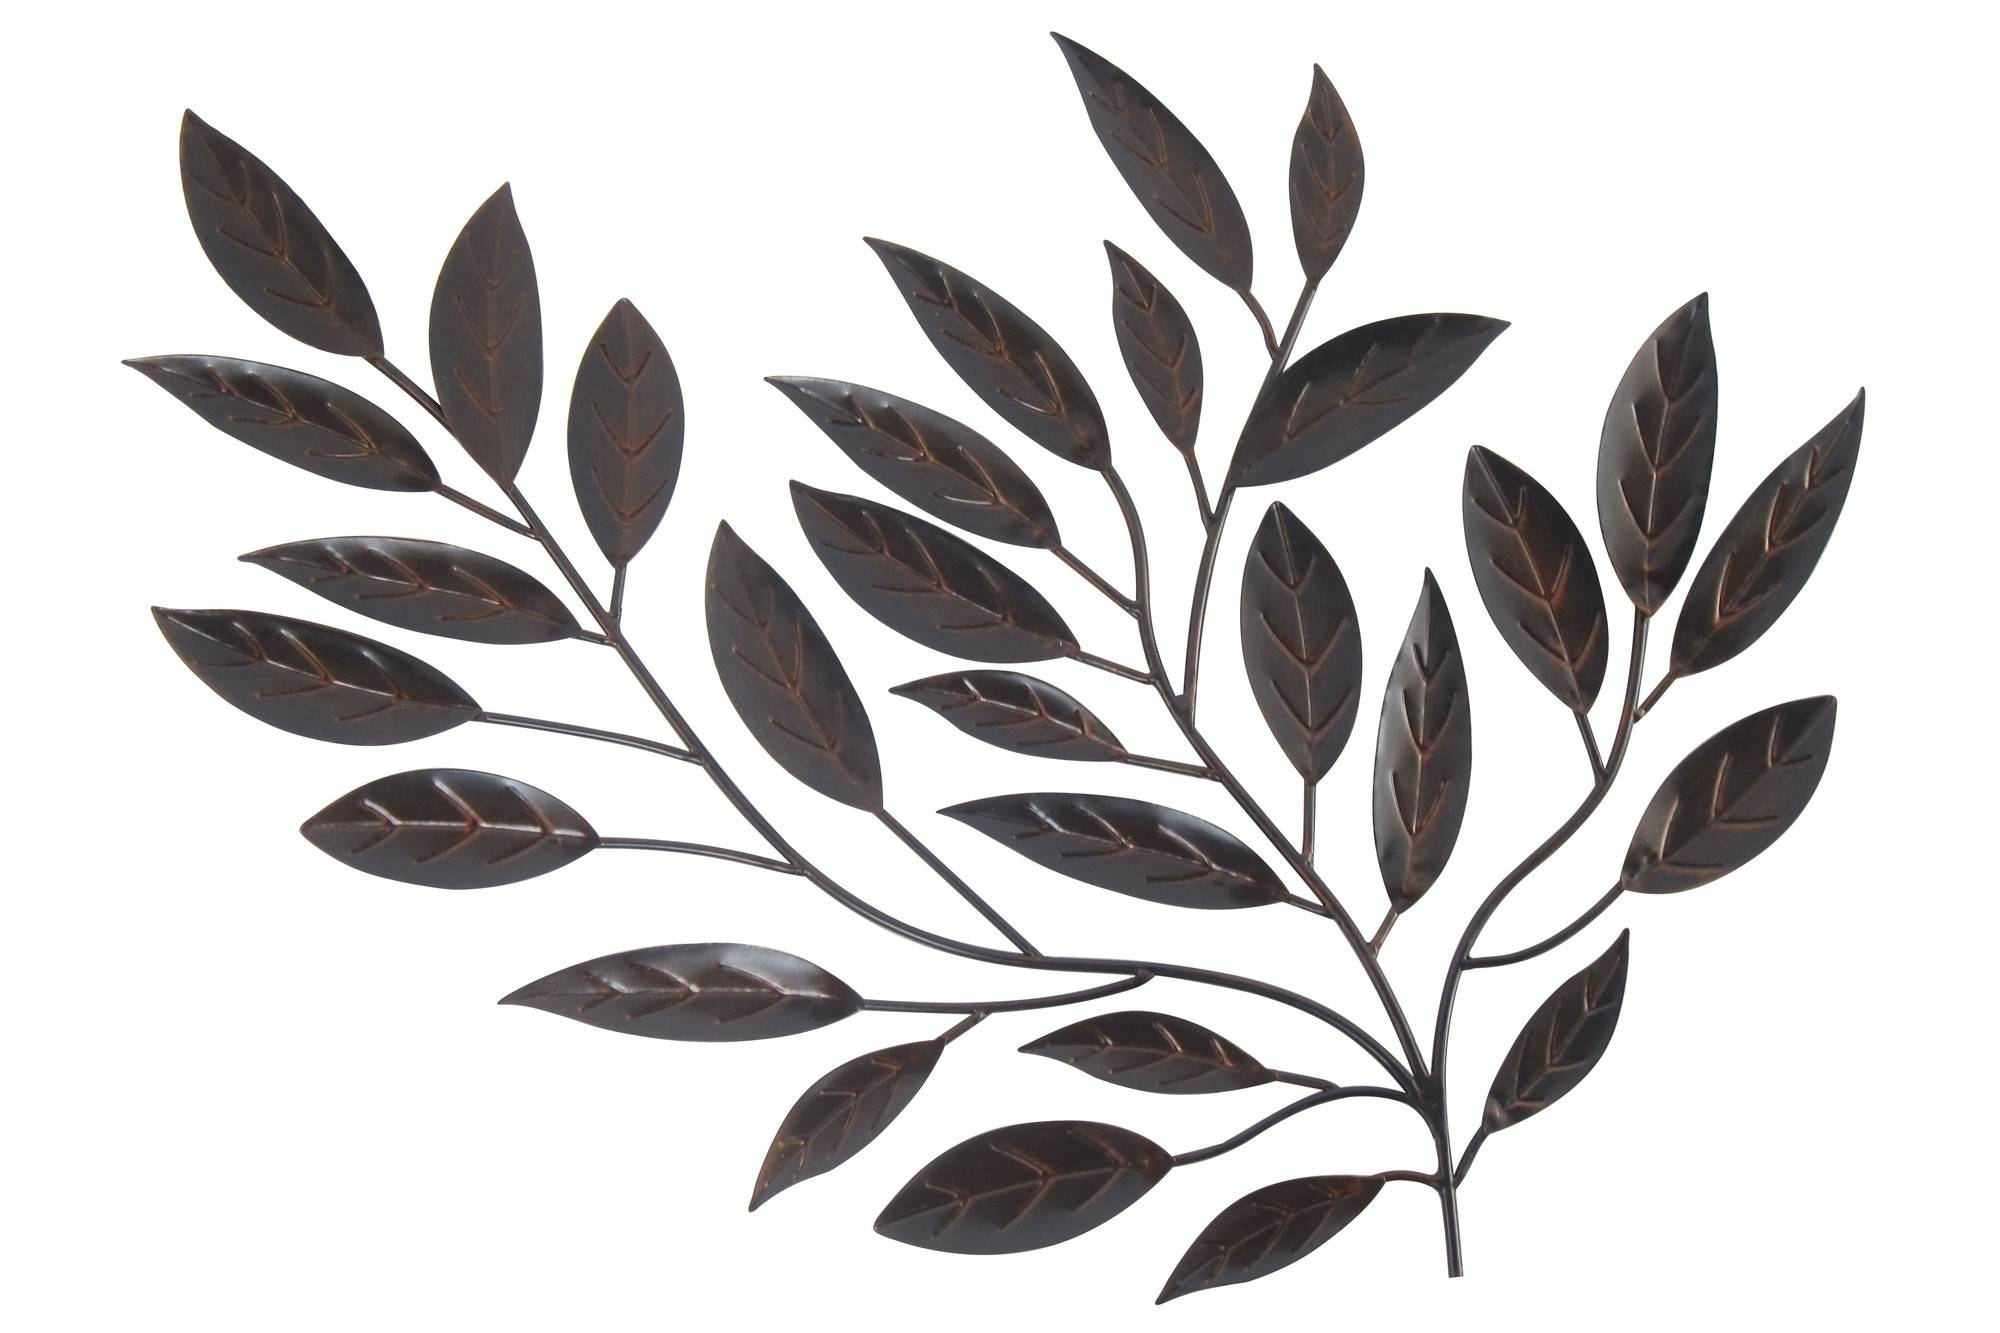 Forged Metal Leaves – Floral Metal Wall Art With Regard To Recent Leaf Metal Wall Art (Gallery 5 of 20)